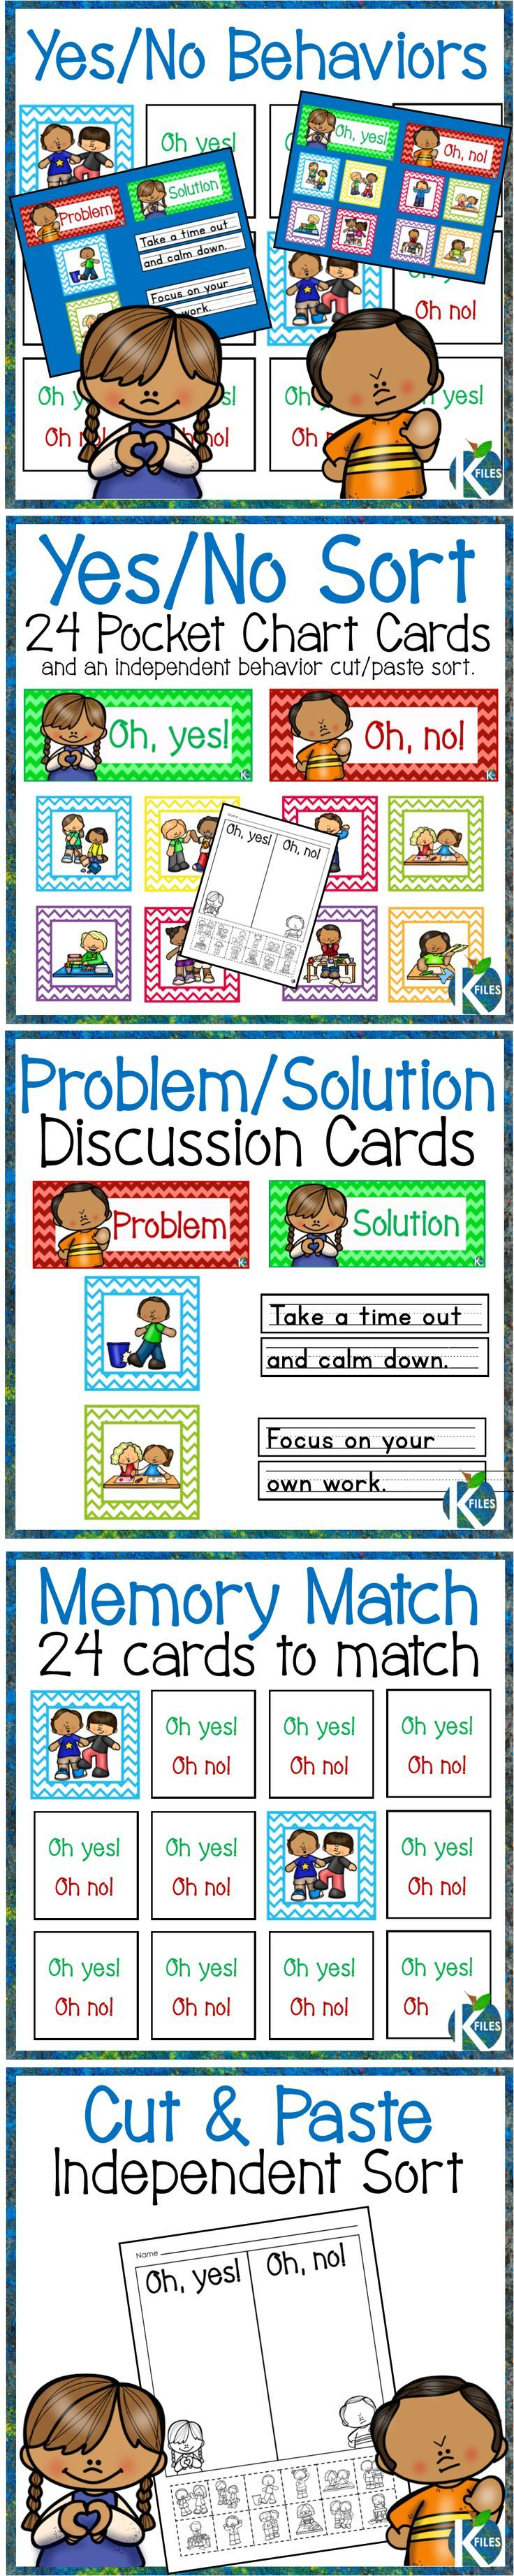 This Back to School resource includes 24 picture cards that can be used in multiple ways: Sort the behaviors by positive/negative in a pocket chart. Print the cards for a matching game to elicit discussion of appropriate behaviors in the classroom among your students. Display the Problem cards and discuss and record possible solutions. Included: 24 yes/no behavior cards 2 headers: Problem and Solution for discussion 2 headers: Oh Yes! and Oh No! for sorting, 1 Independent cut and paste…